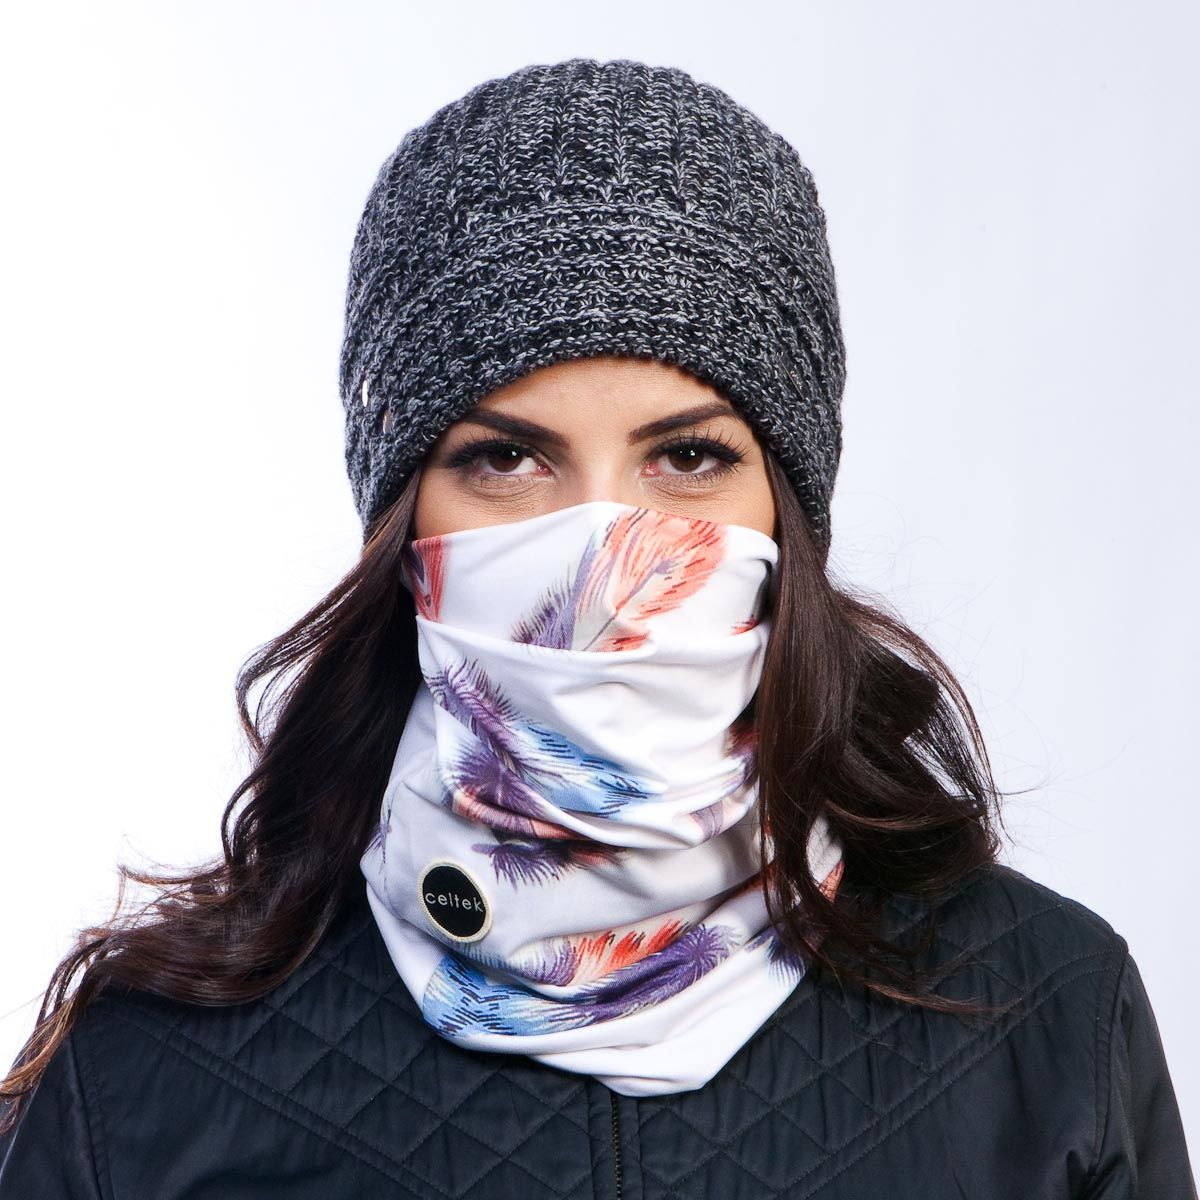 Hadley Neck Gaiter (With images) Snowboard, Snowboarding